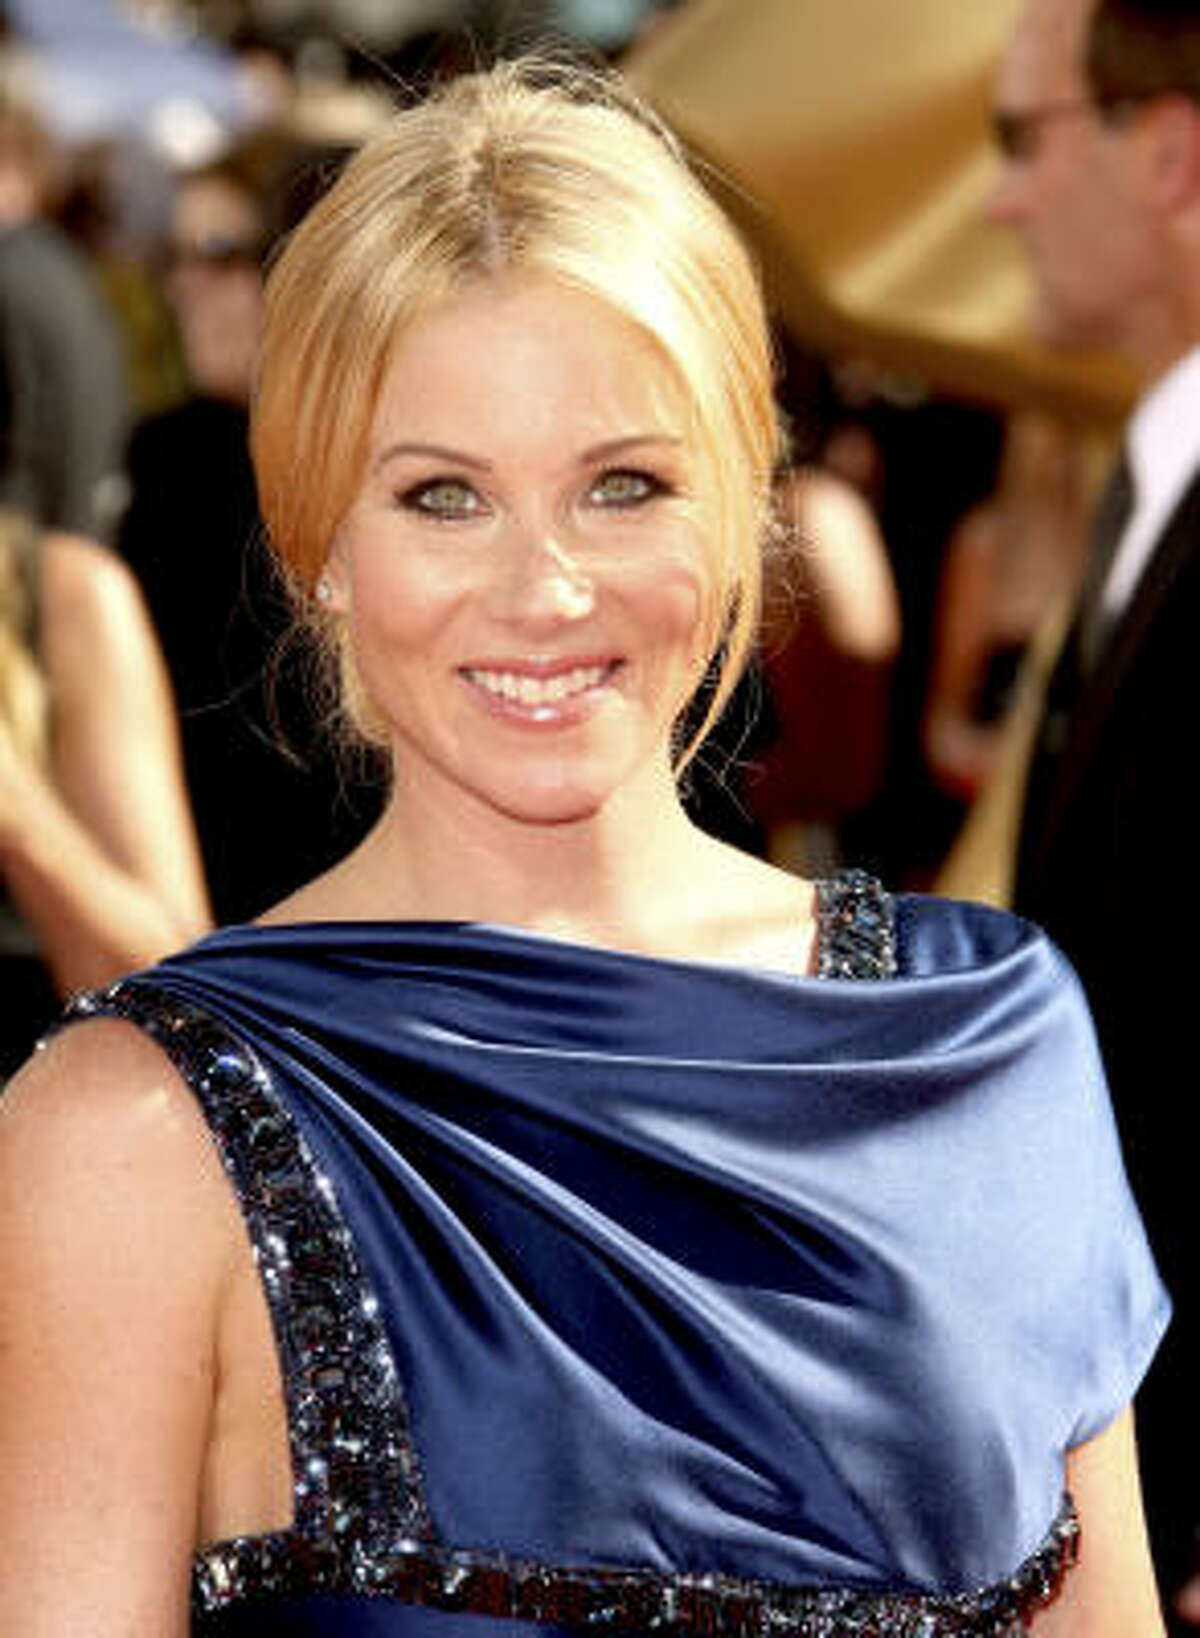 Christina Applegate was diagnosed in 2008 at the age of 36.